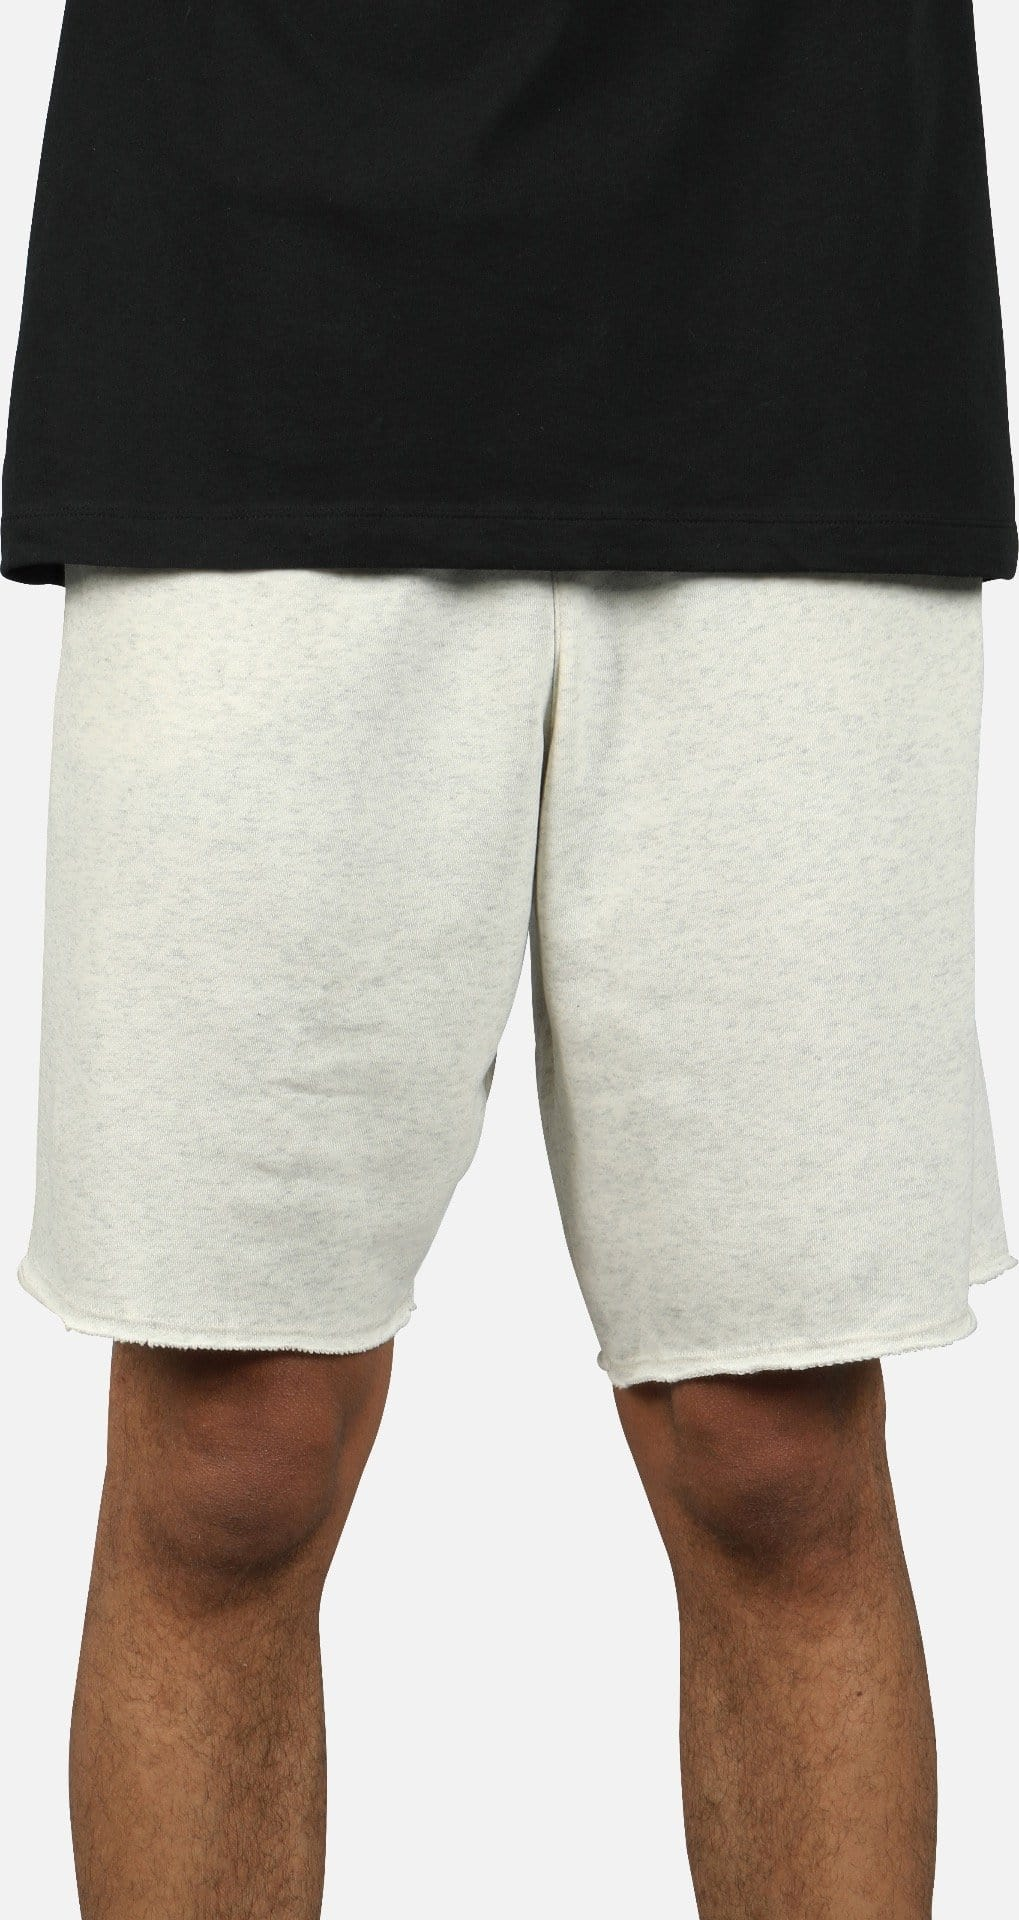 NSW ALUMNI SHORTS